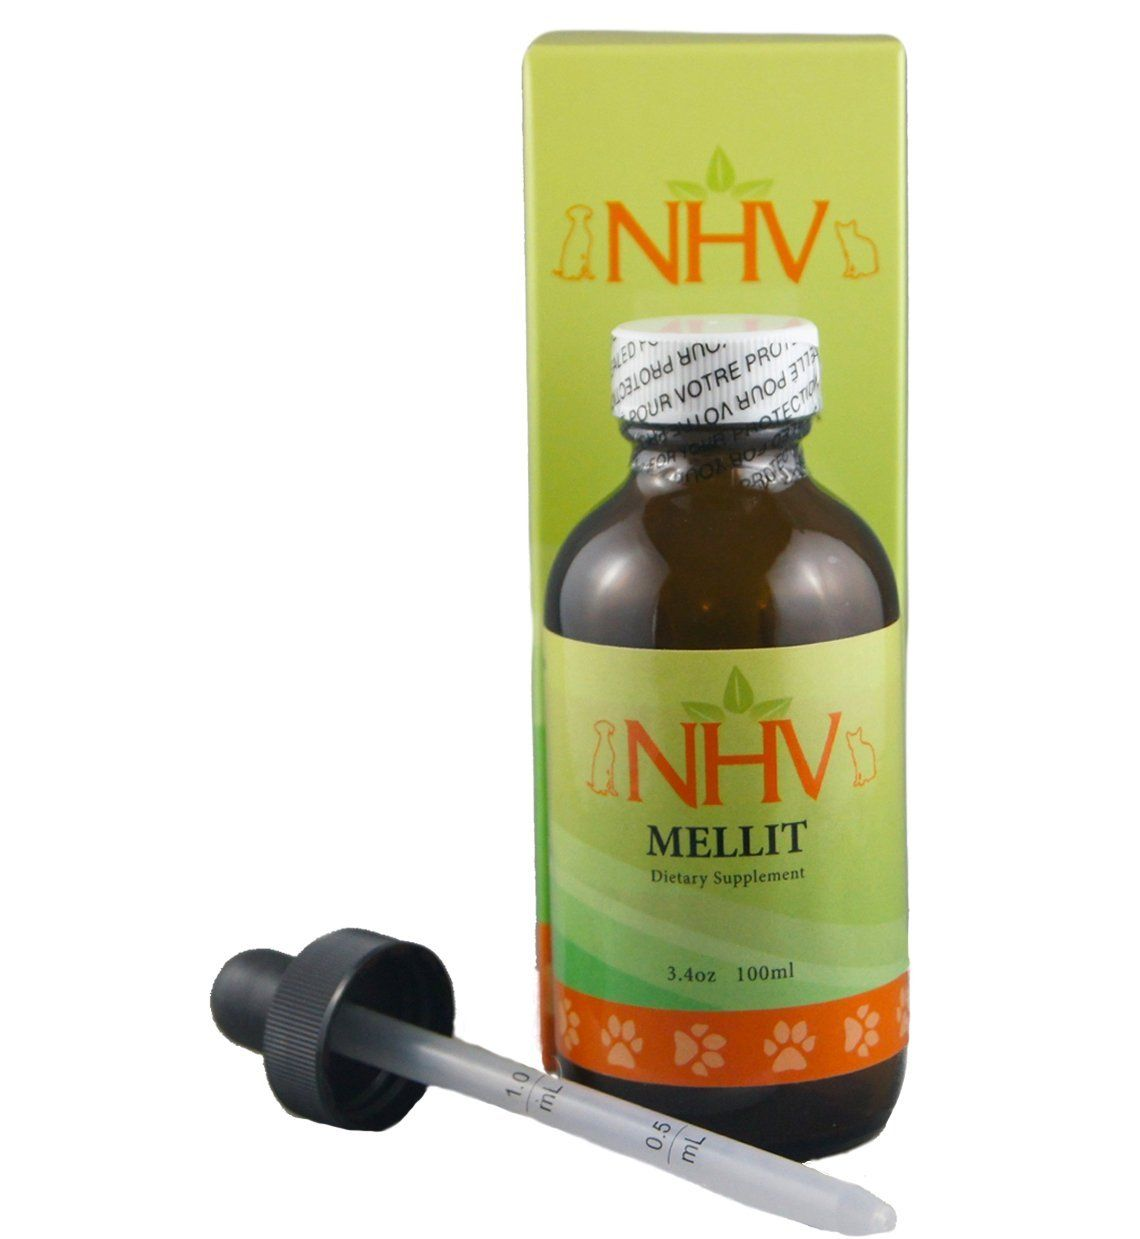 Nhv mellit all natural support for diabetes mellitus and